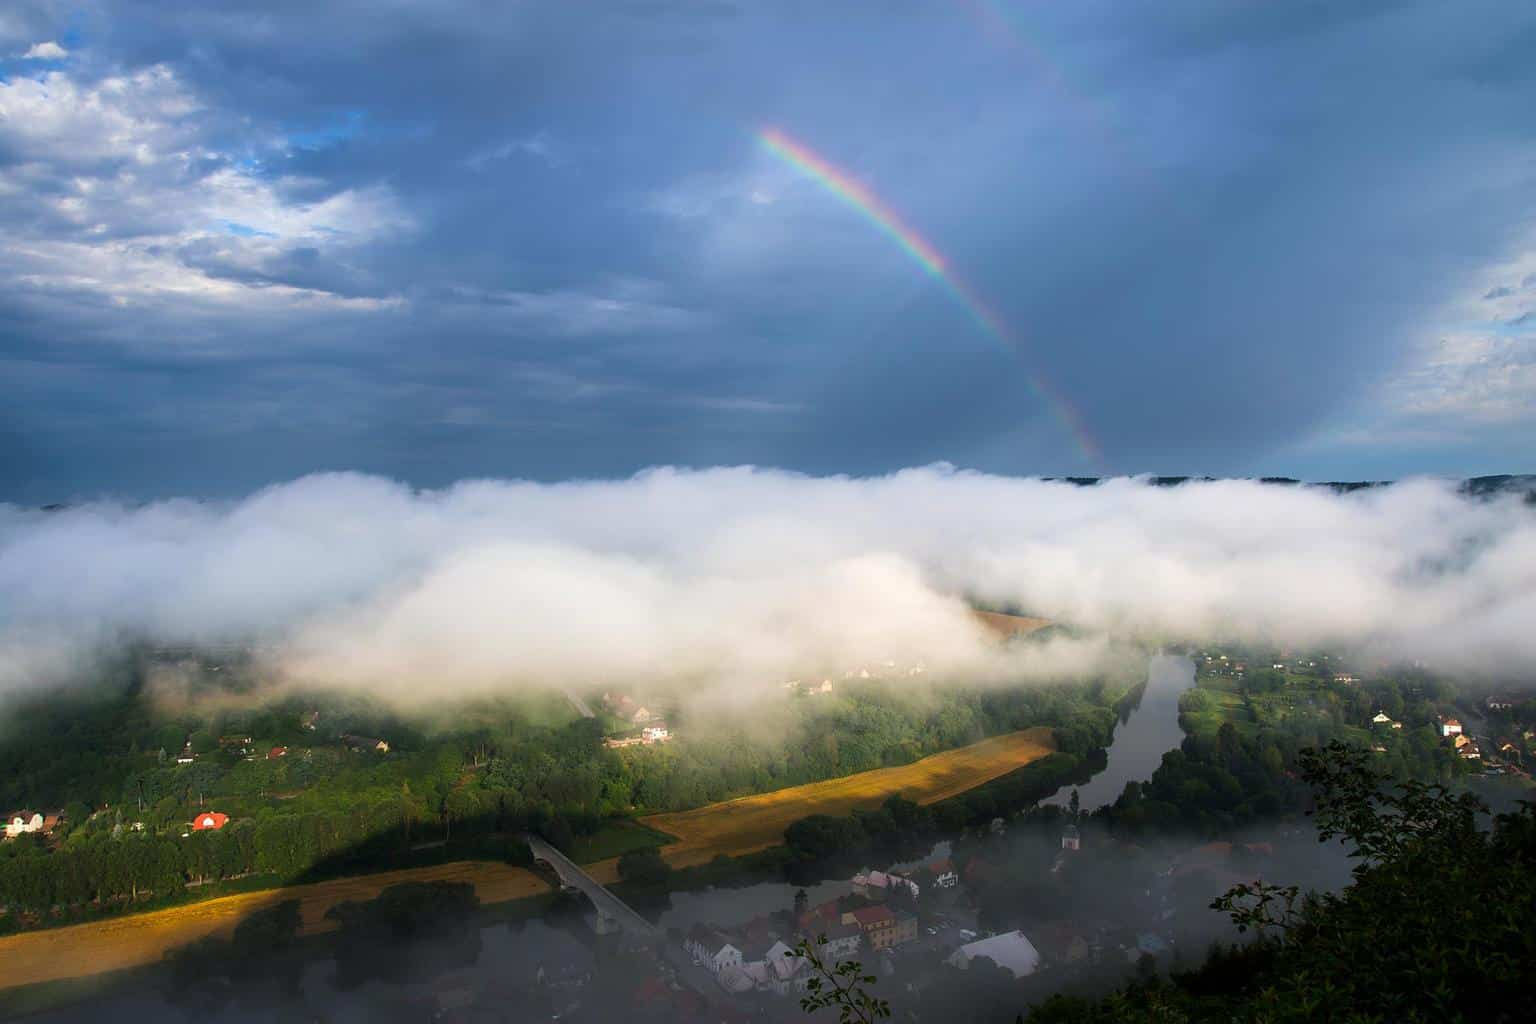 Valley fog, anti-crepuscular rays and rainbow, Czech republic, 10th July 2017